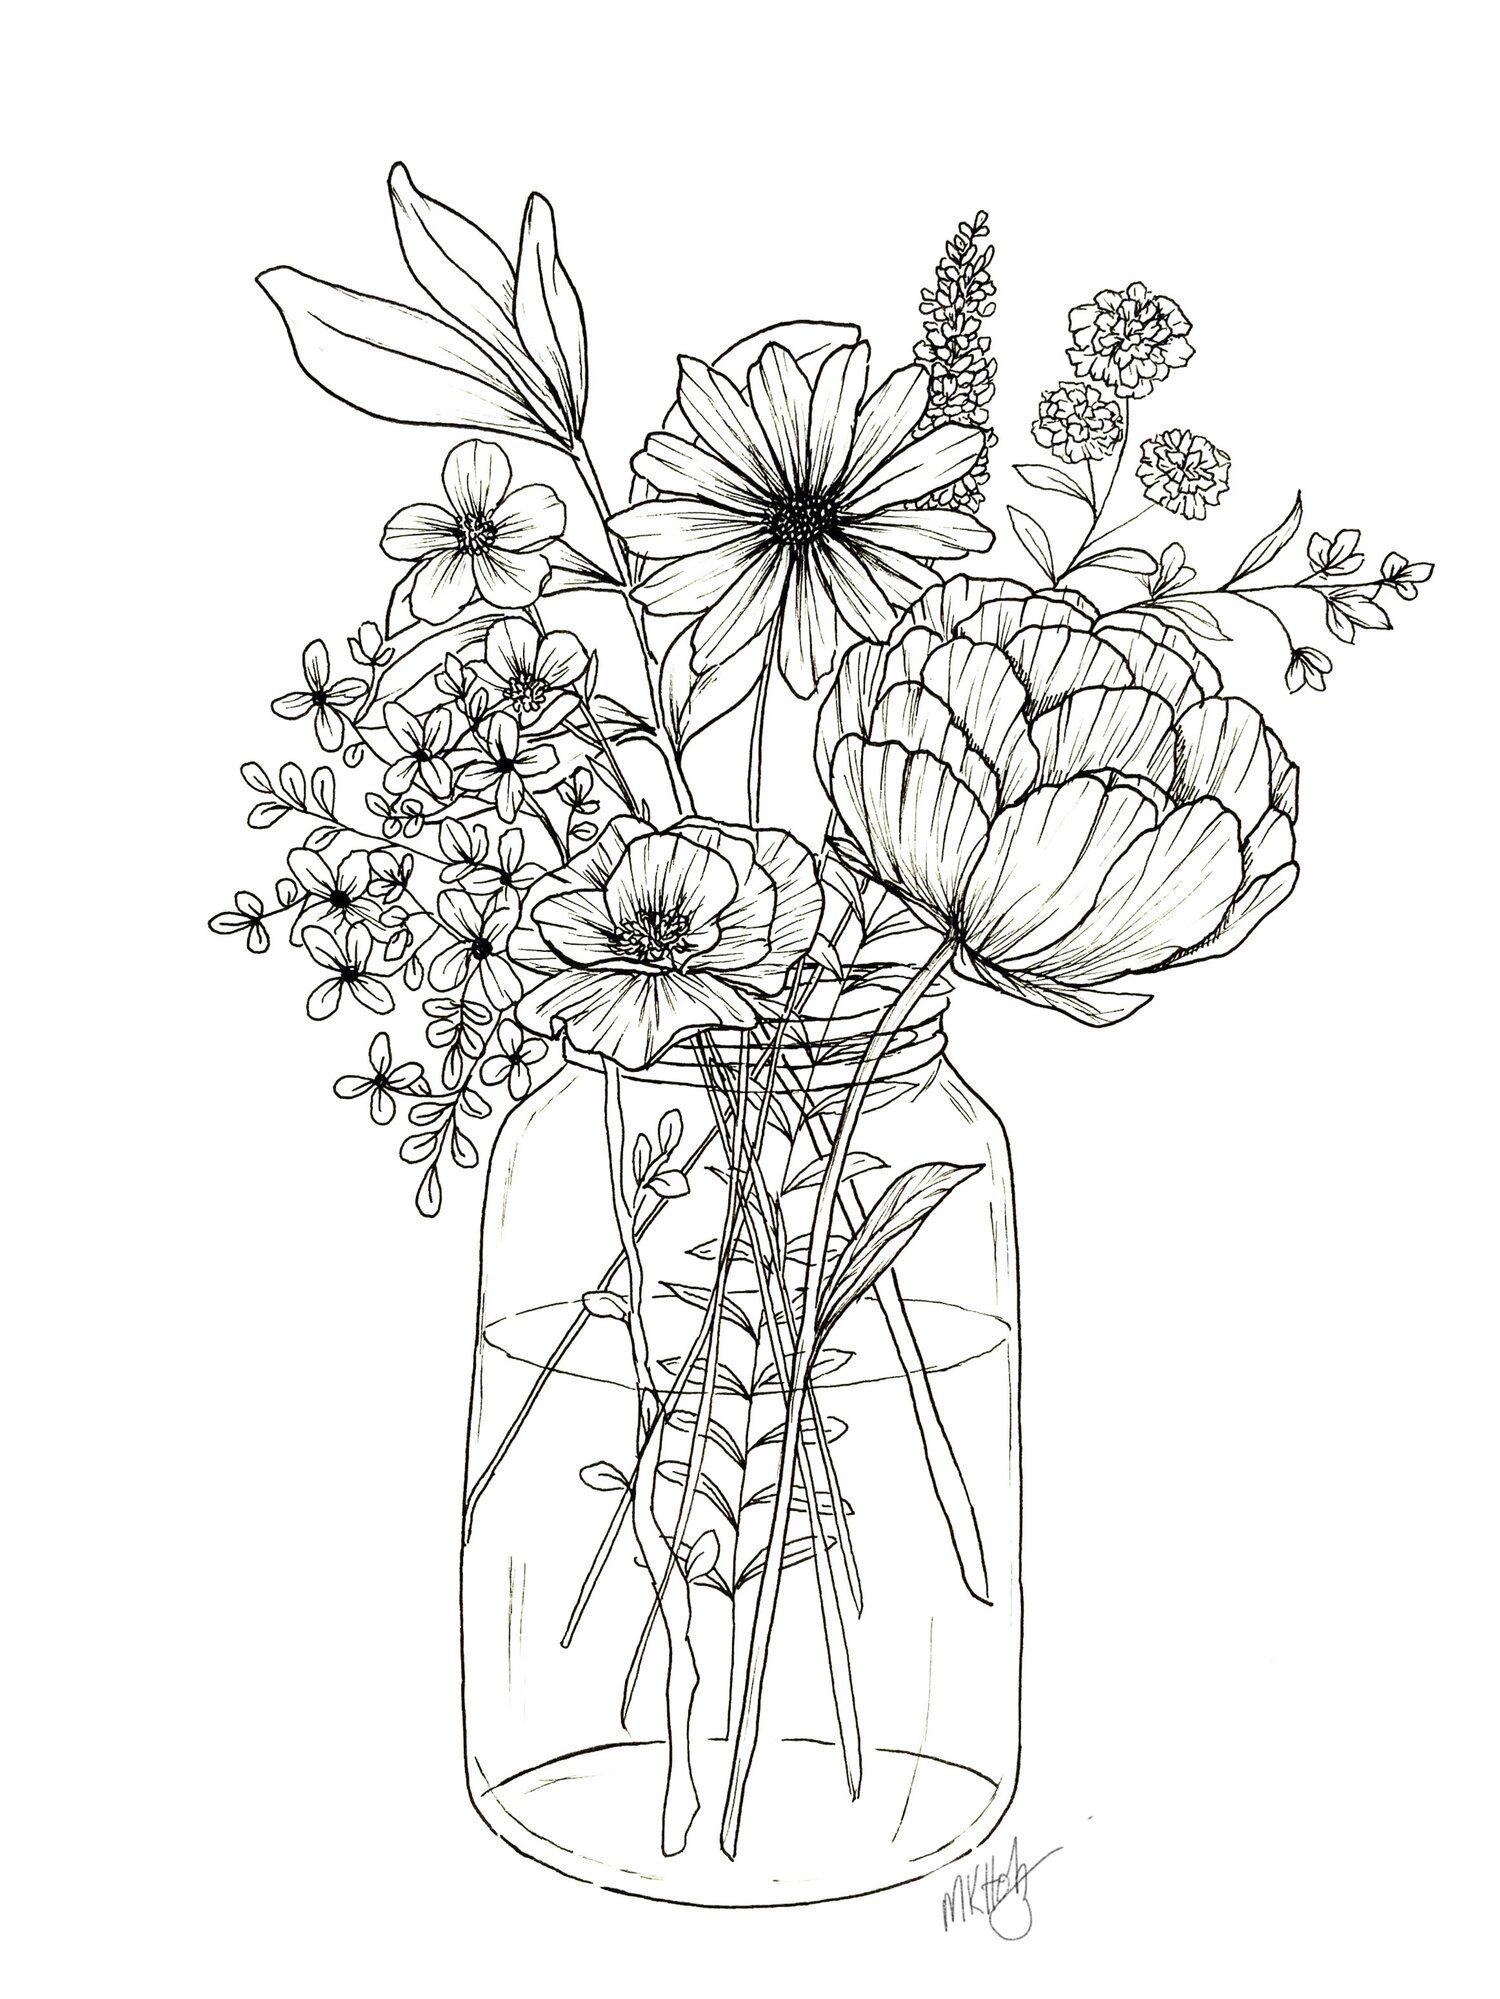 Floral Arrangement Coloring Page In 2020 Flower Line Drawings Floral Drawing Flower Sketches